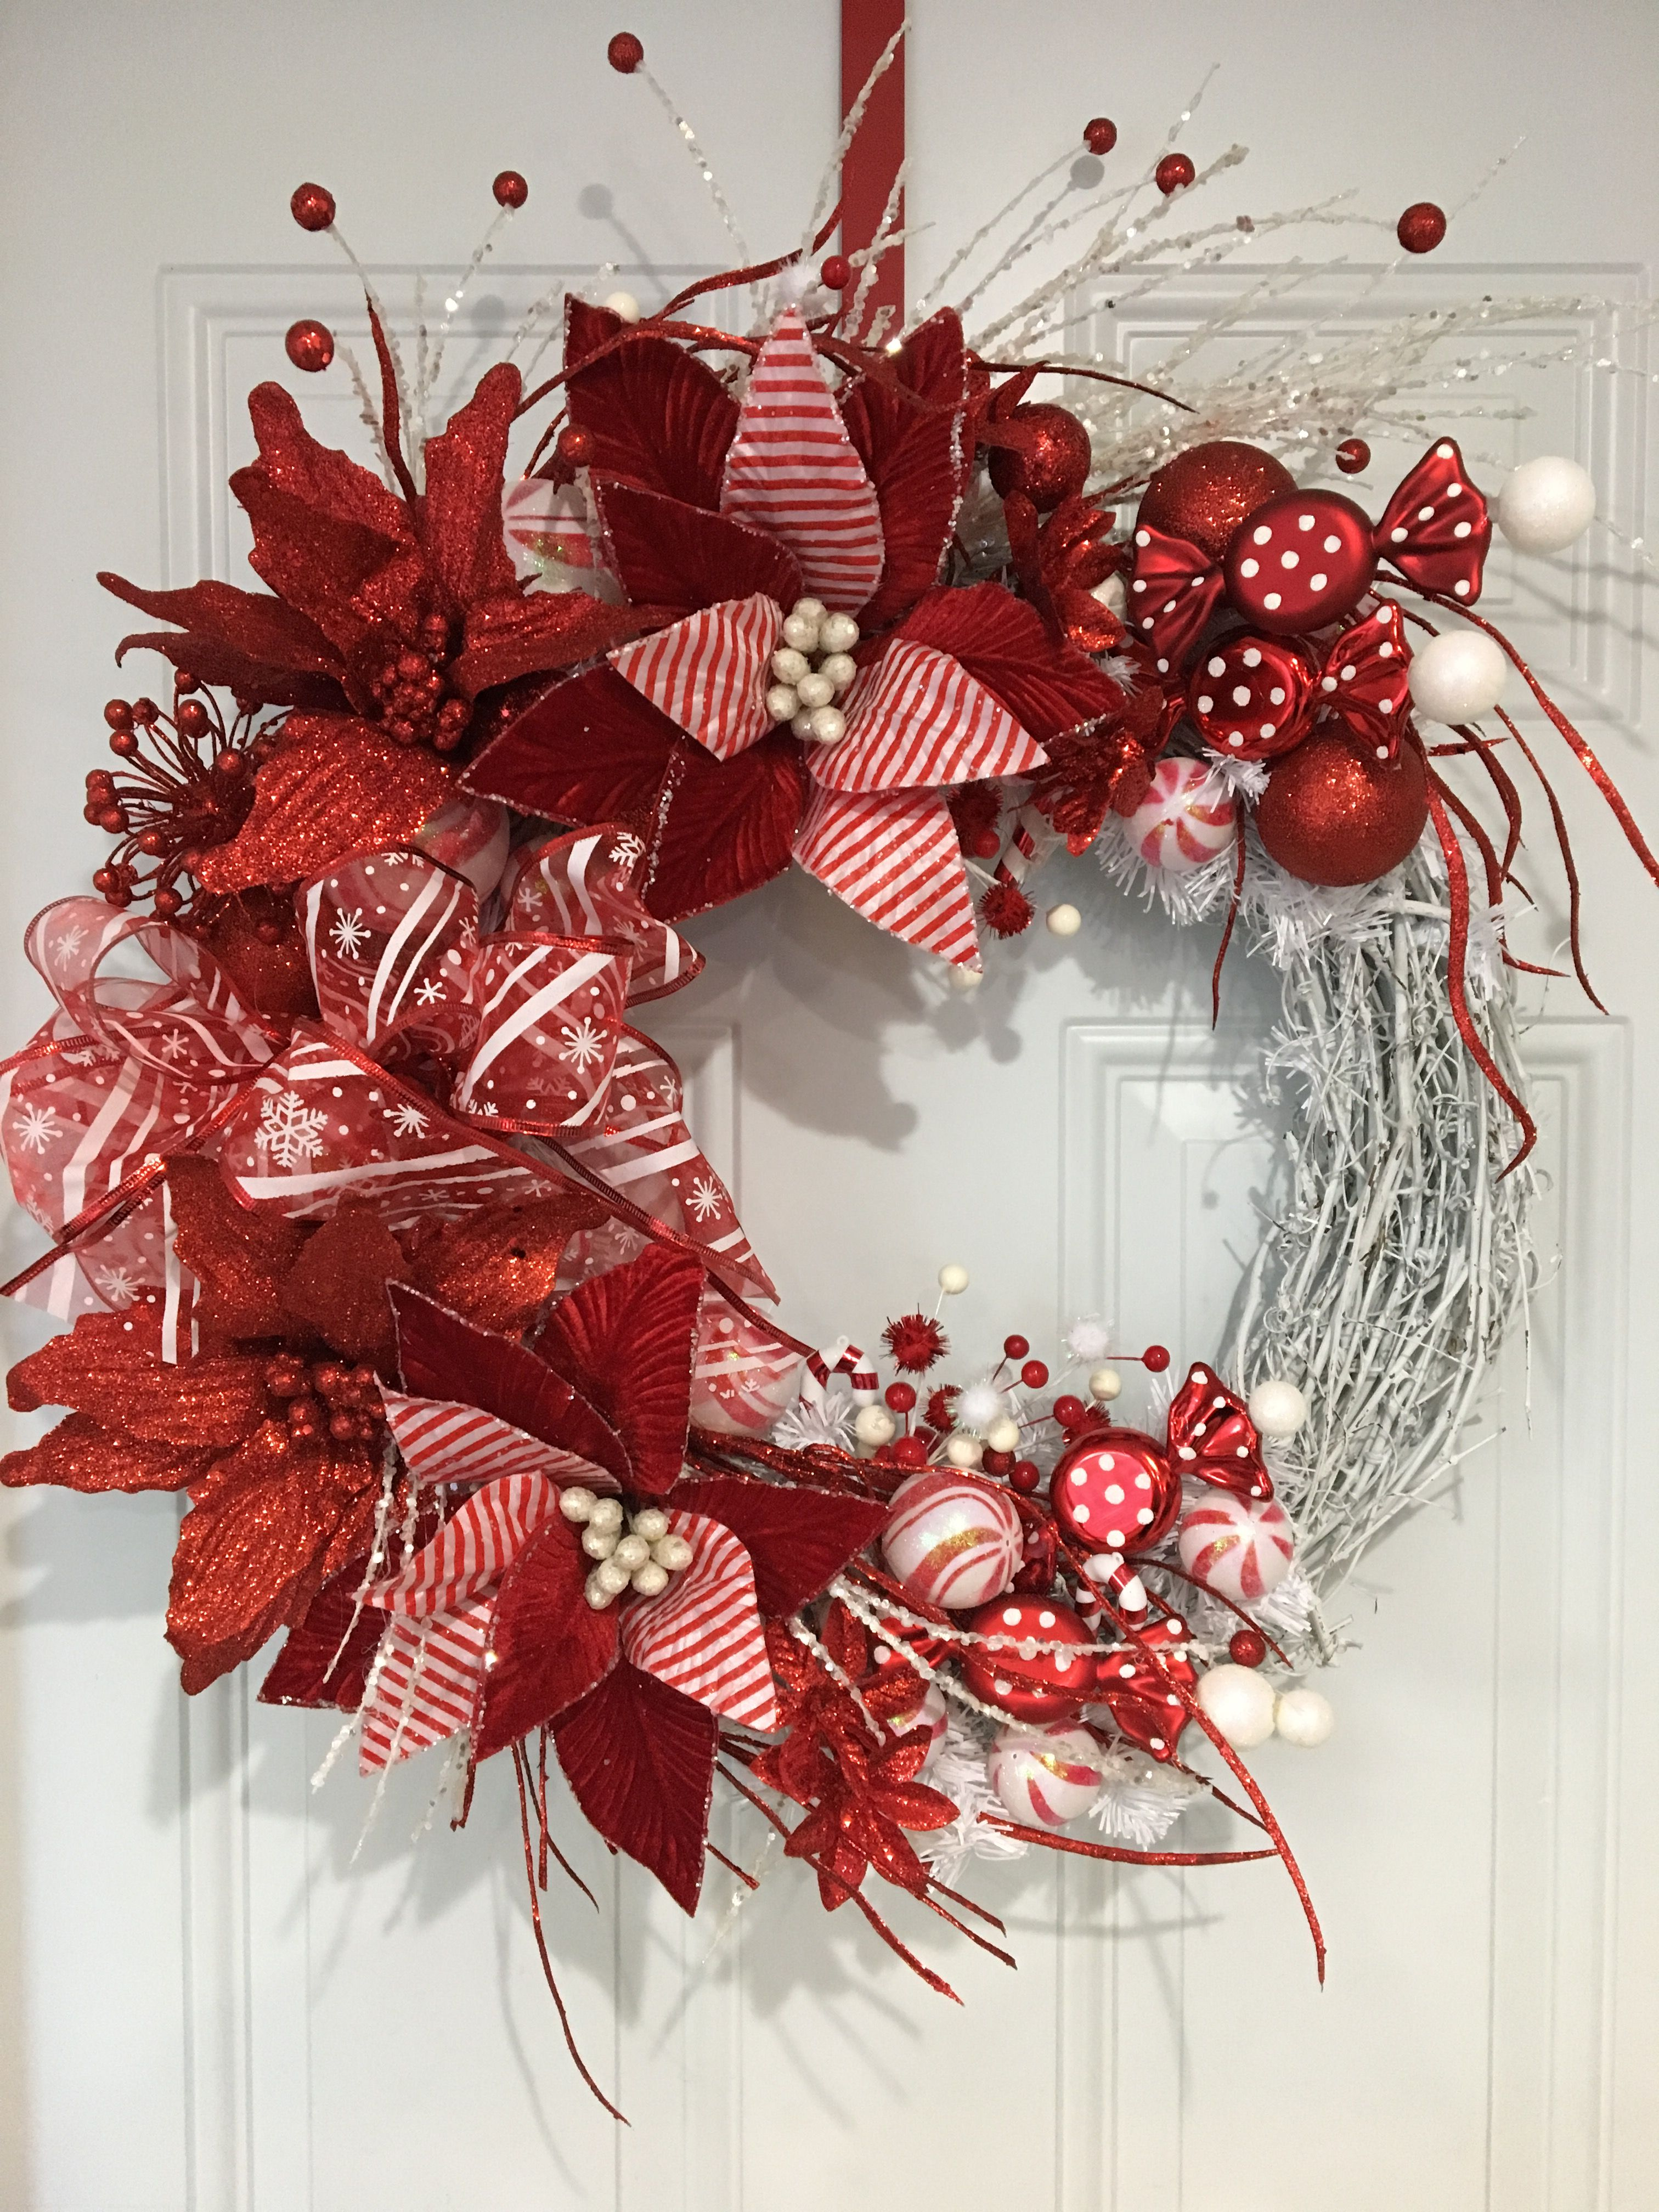 Holiday Wreaths Christmas Wreaths Candy Canes Red And White Stripes Christmas Decorations Wreaths Christmas Wreaths Christmas Wreaths Diy